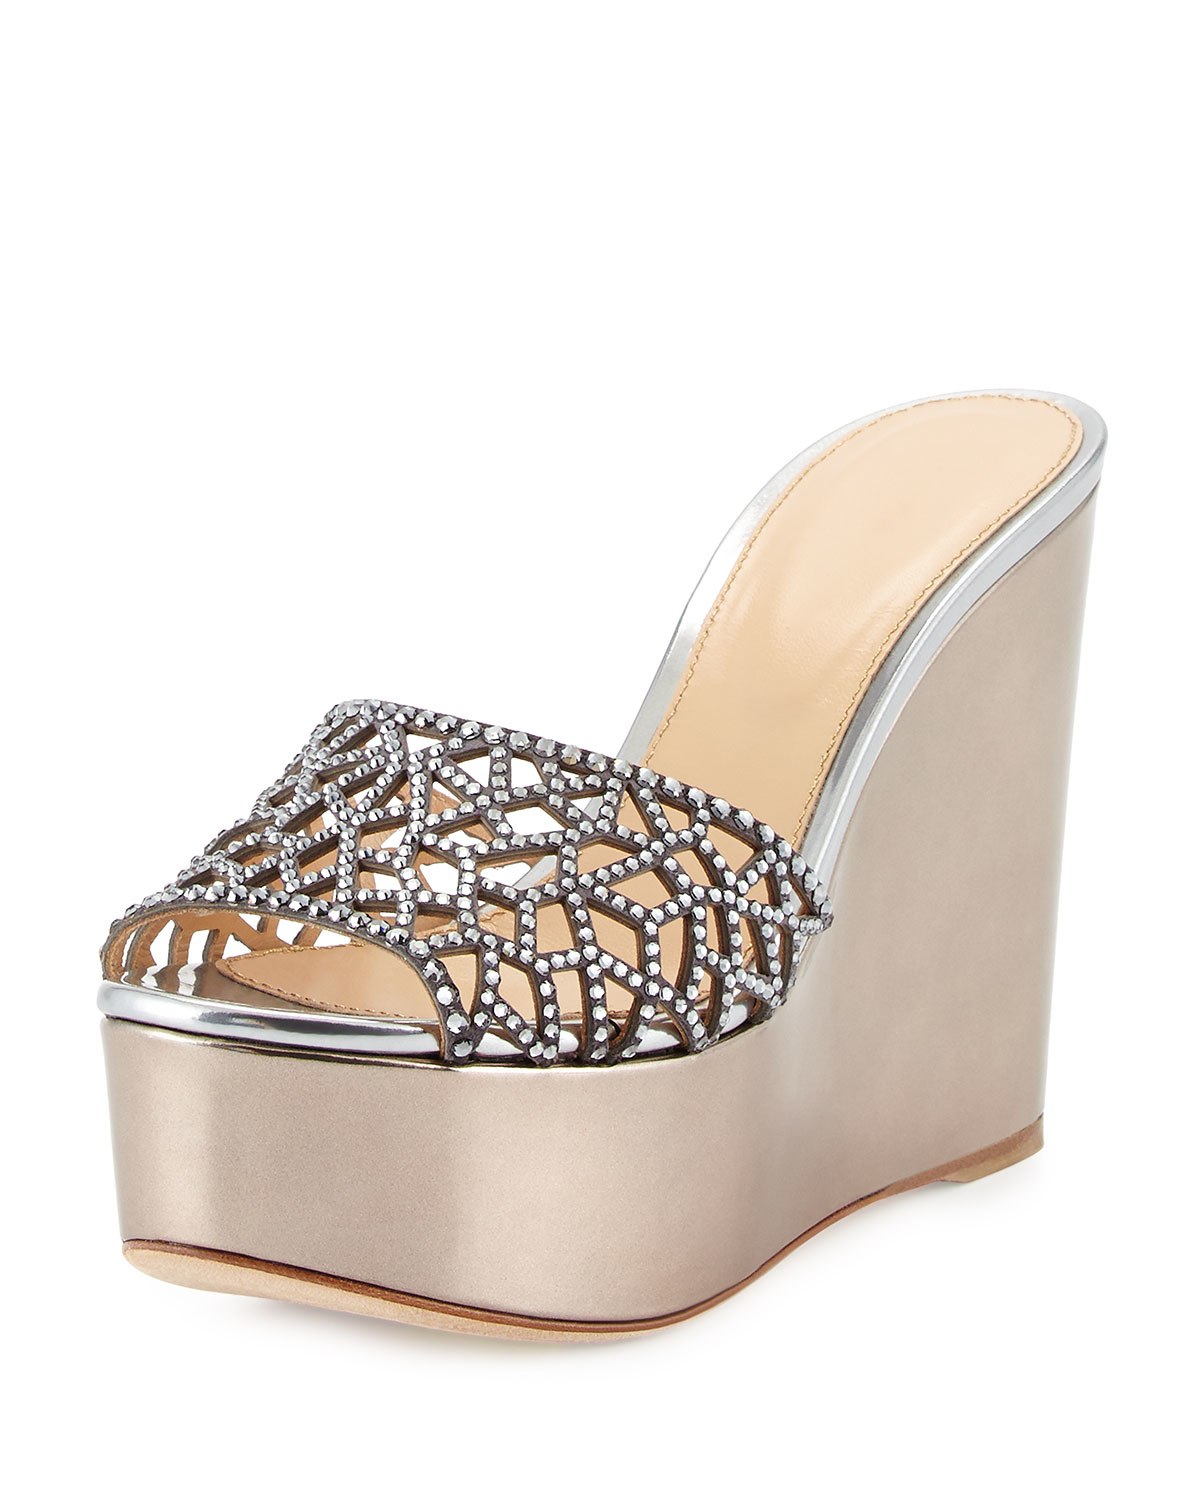 2c9f44374274 sergio rossi tresor strass crystal metallic wedge slide sandal in